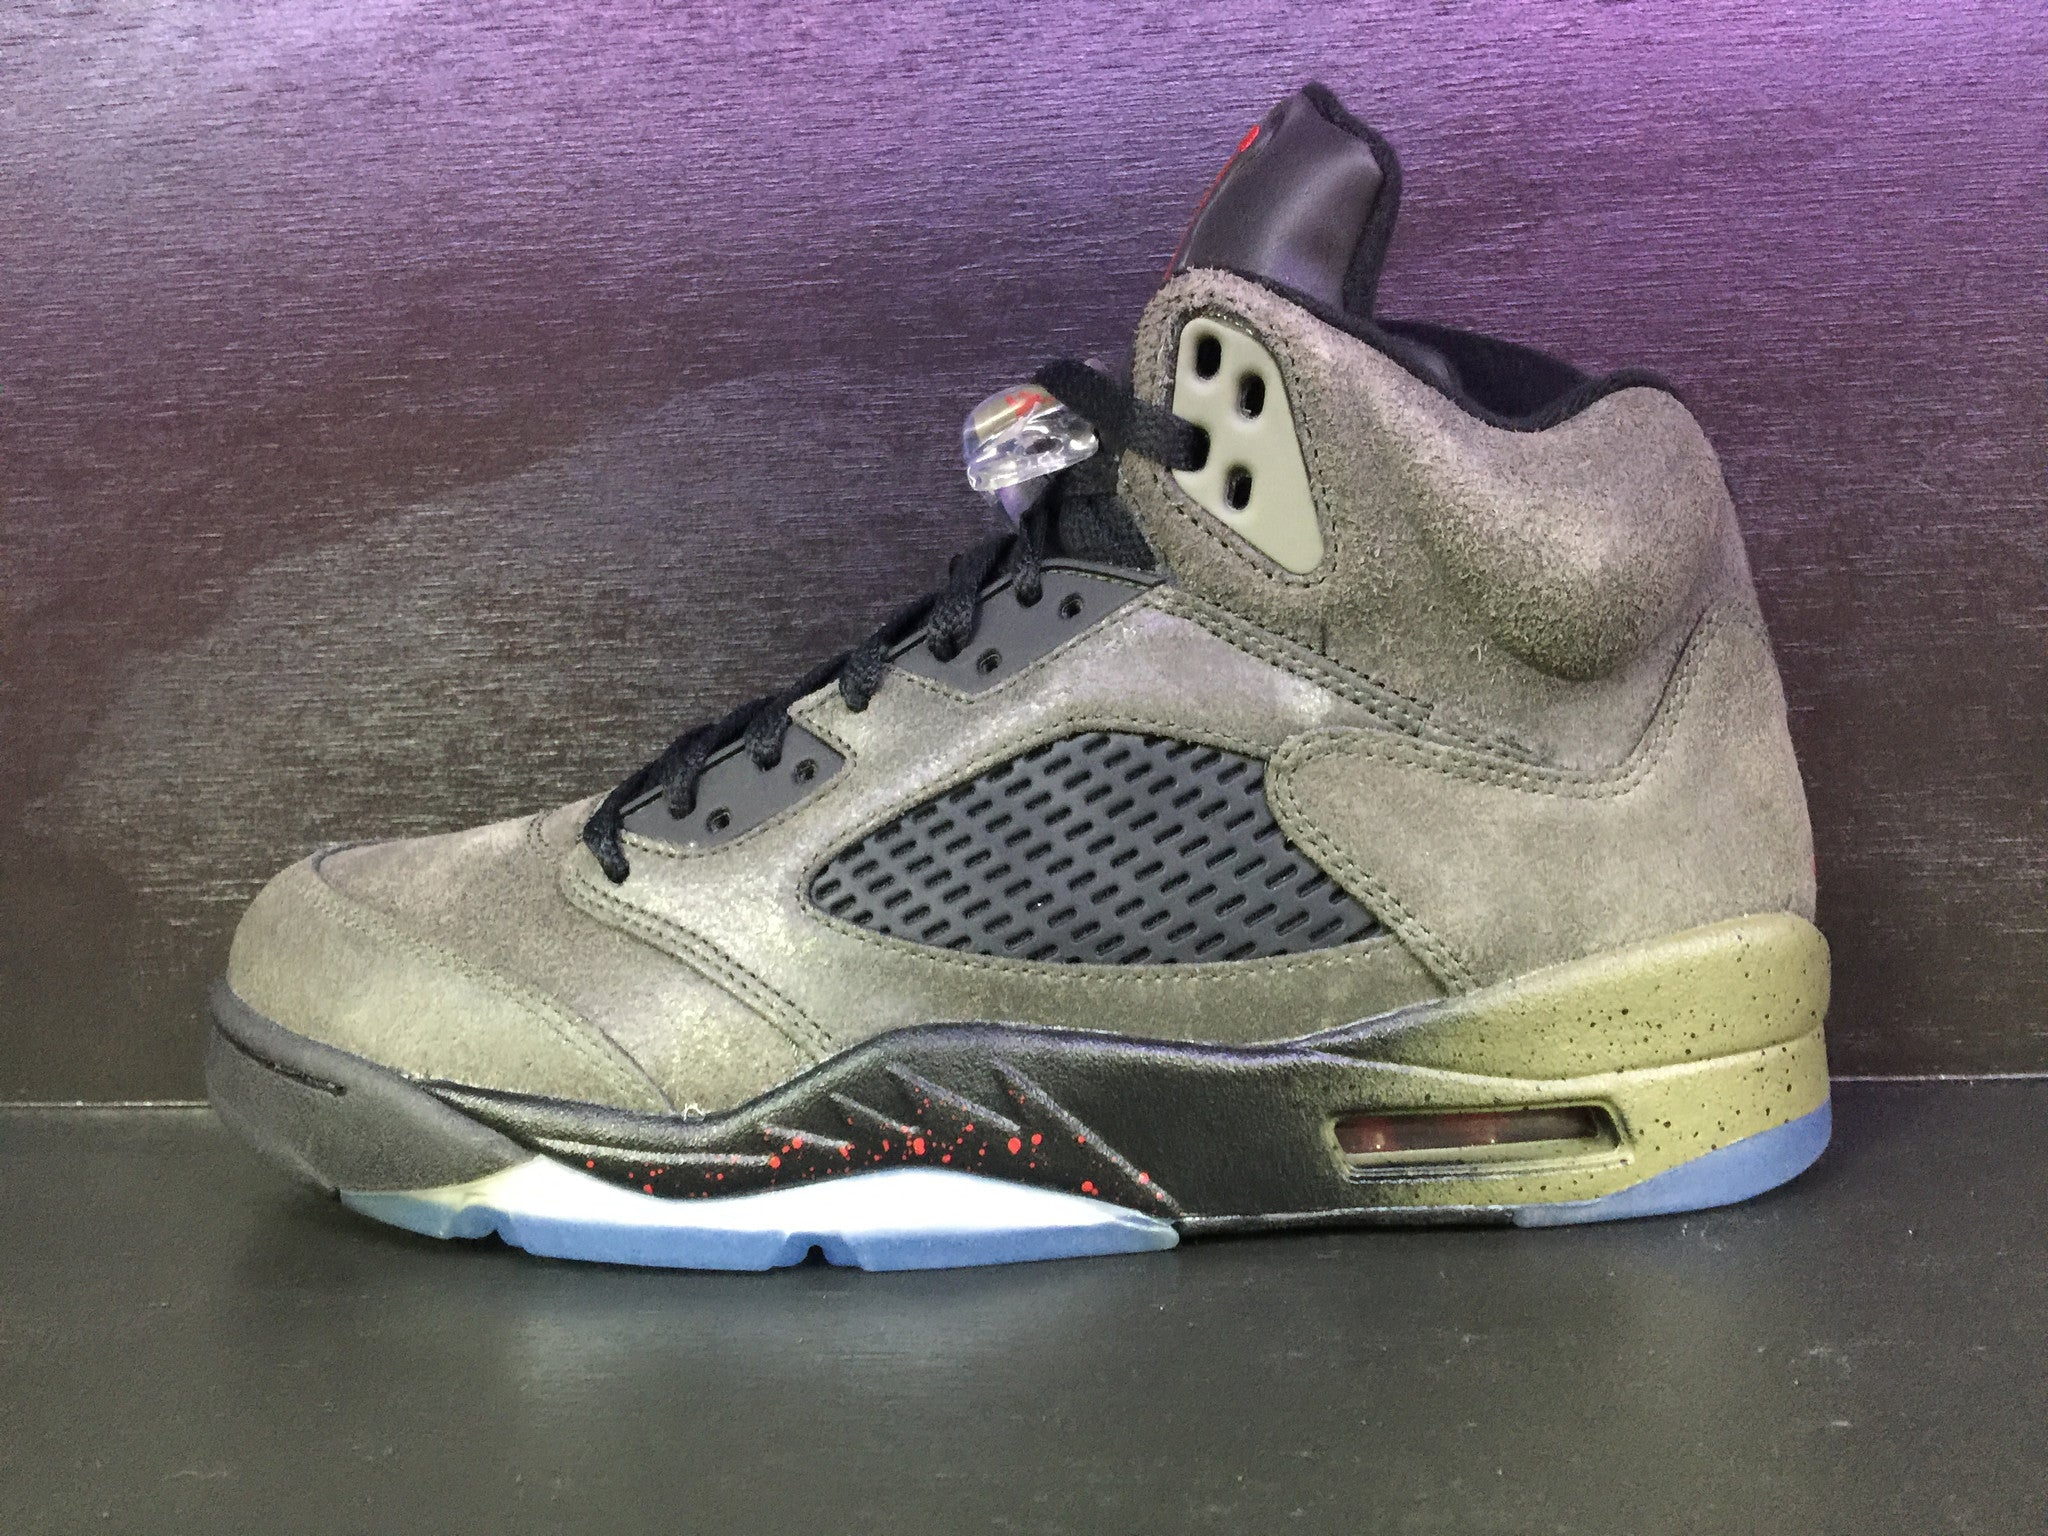 Air Jordan 5 Retro 'Fear'